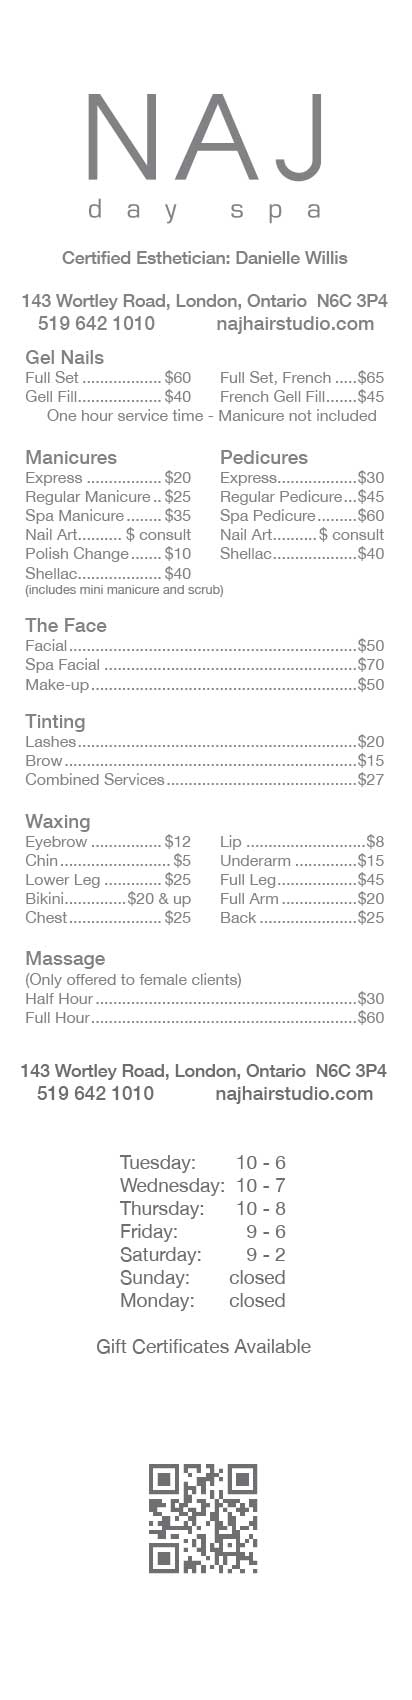 Naj Day Spa Price List Jan 2013